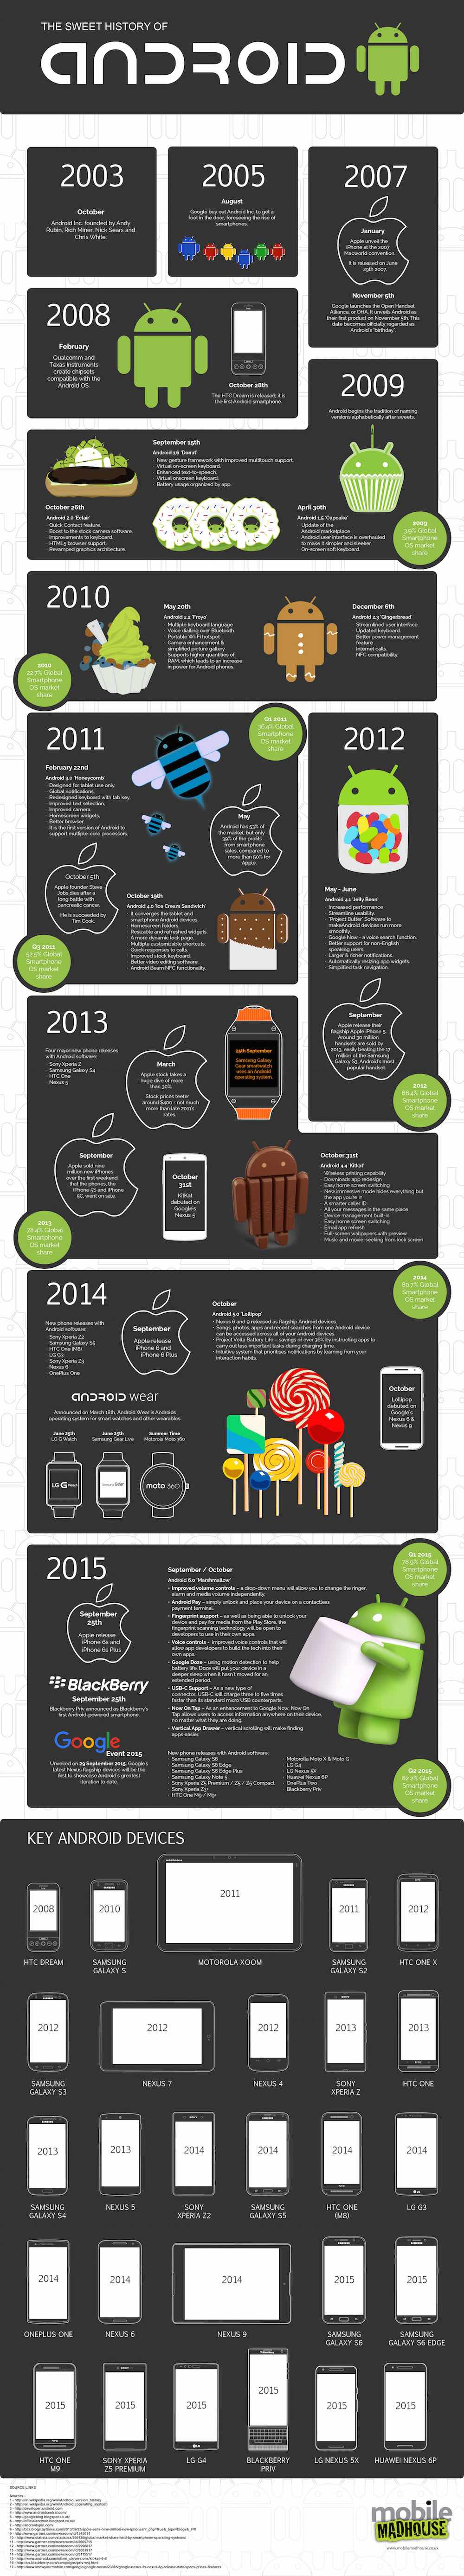 The Evolution Of Android 2003 2015 v4